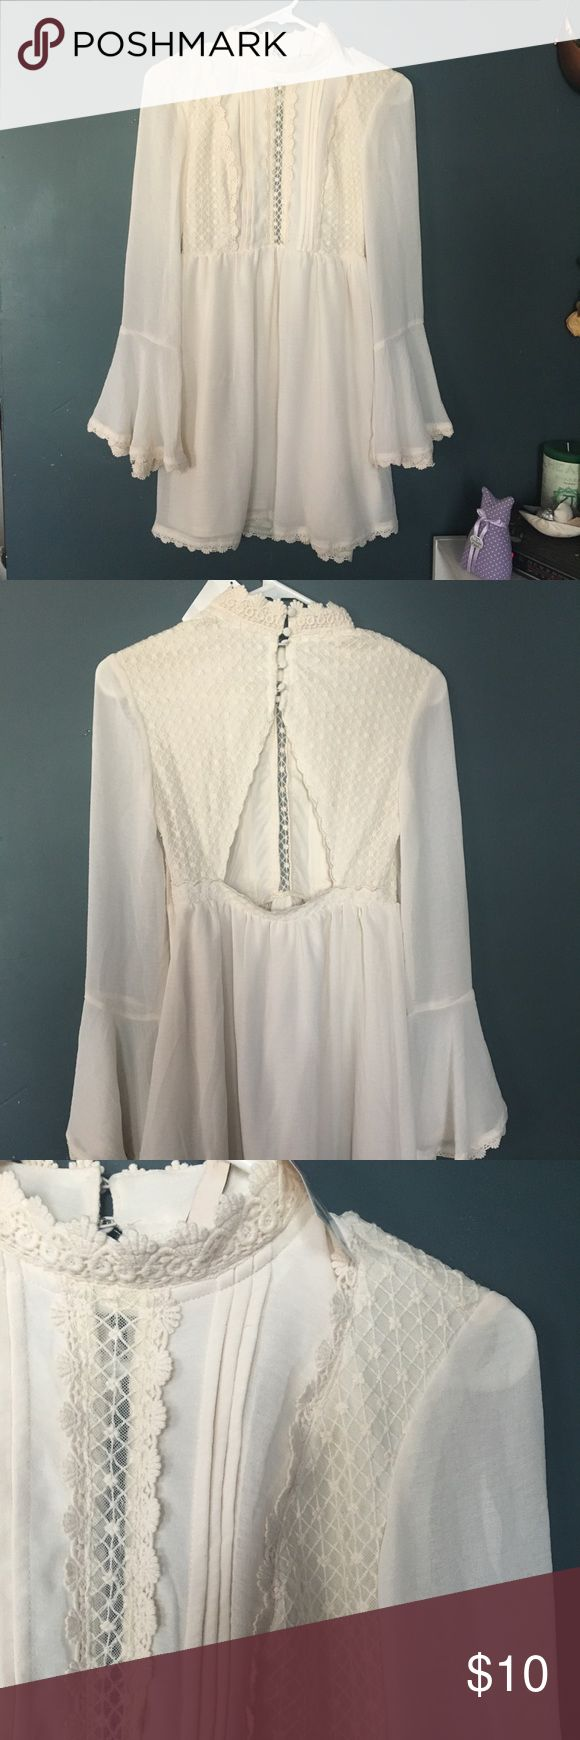 Elegant Boho Dress Brand New / never worn white dress with gorgeous detailing. Big bell sleeves with an open back. Neck is high collar that has a very victorian feel to it. Super elegant but can be dressed down! From H&M but reminds me of Free People :) H&M Dresses Long Sleeve